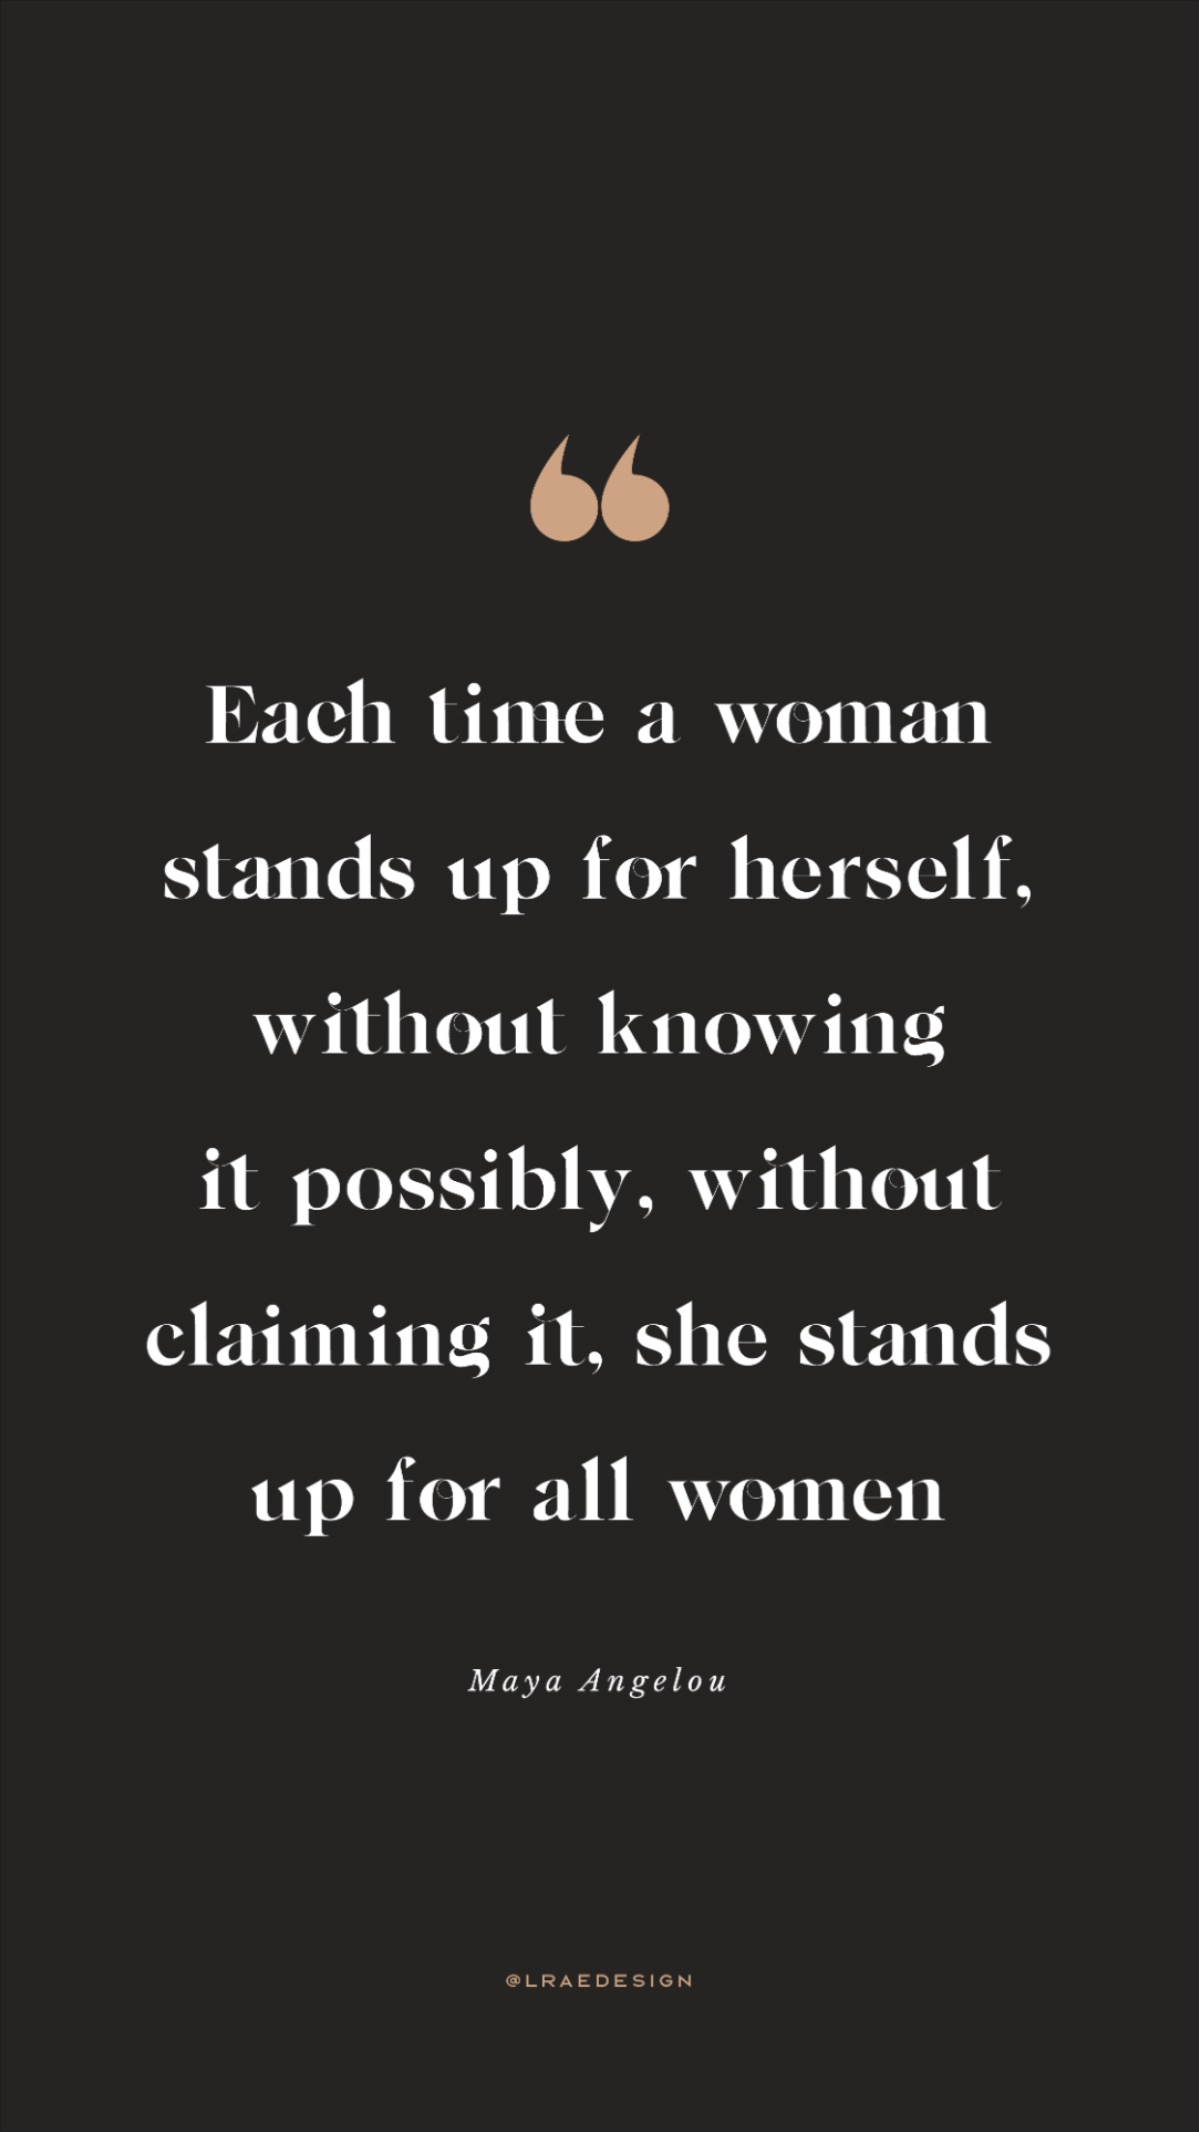 5 Inspirational Quotes to Celebrate International Women's Day